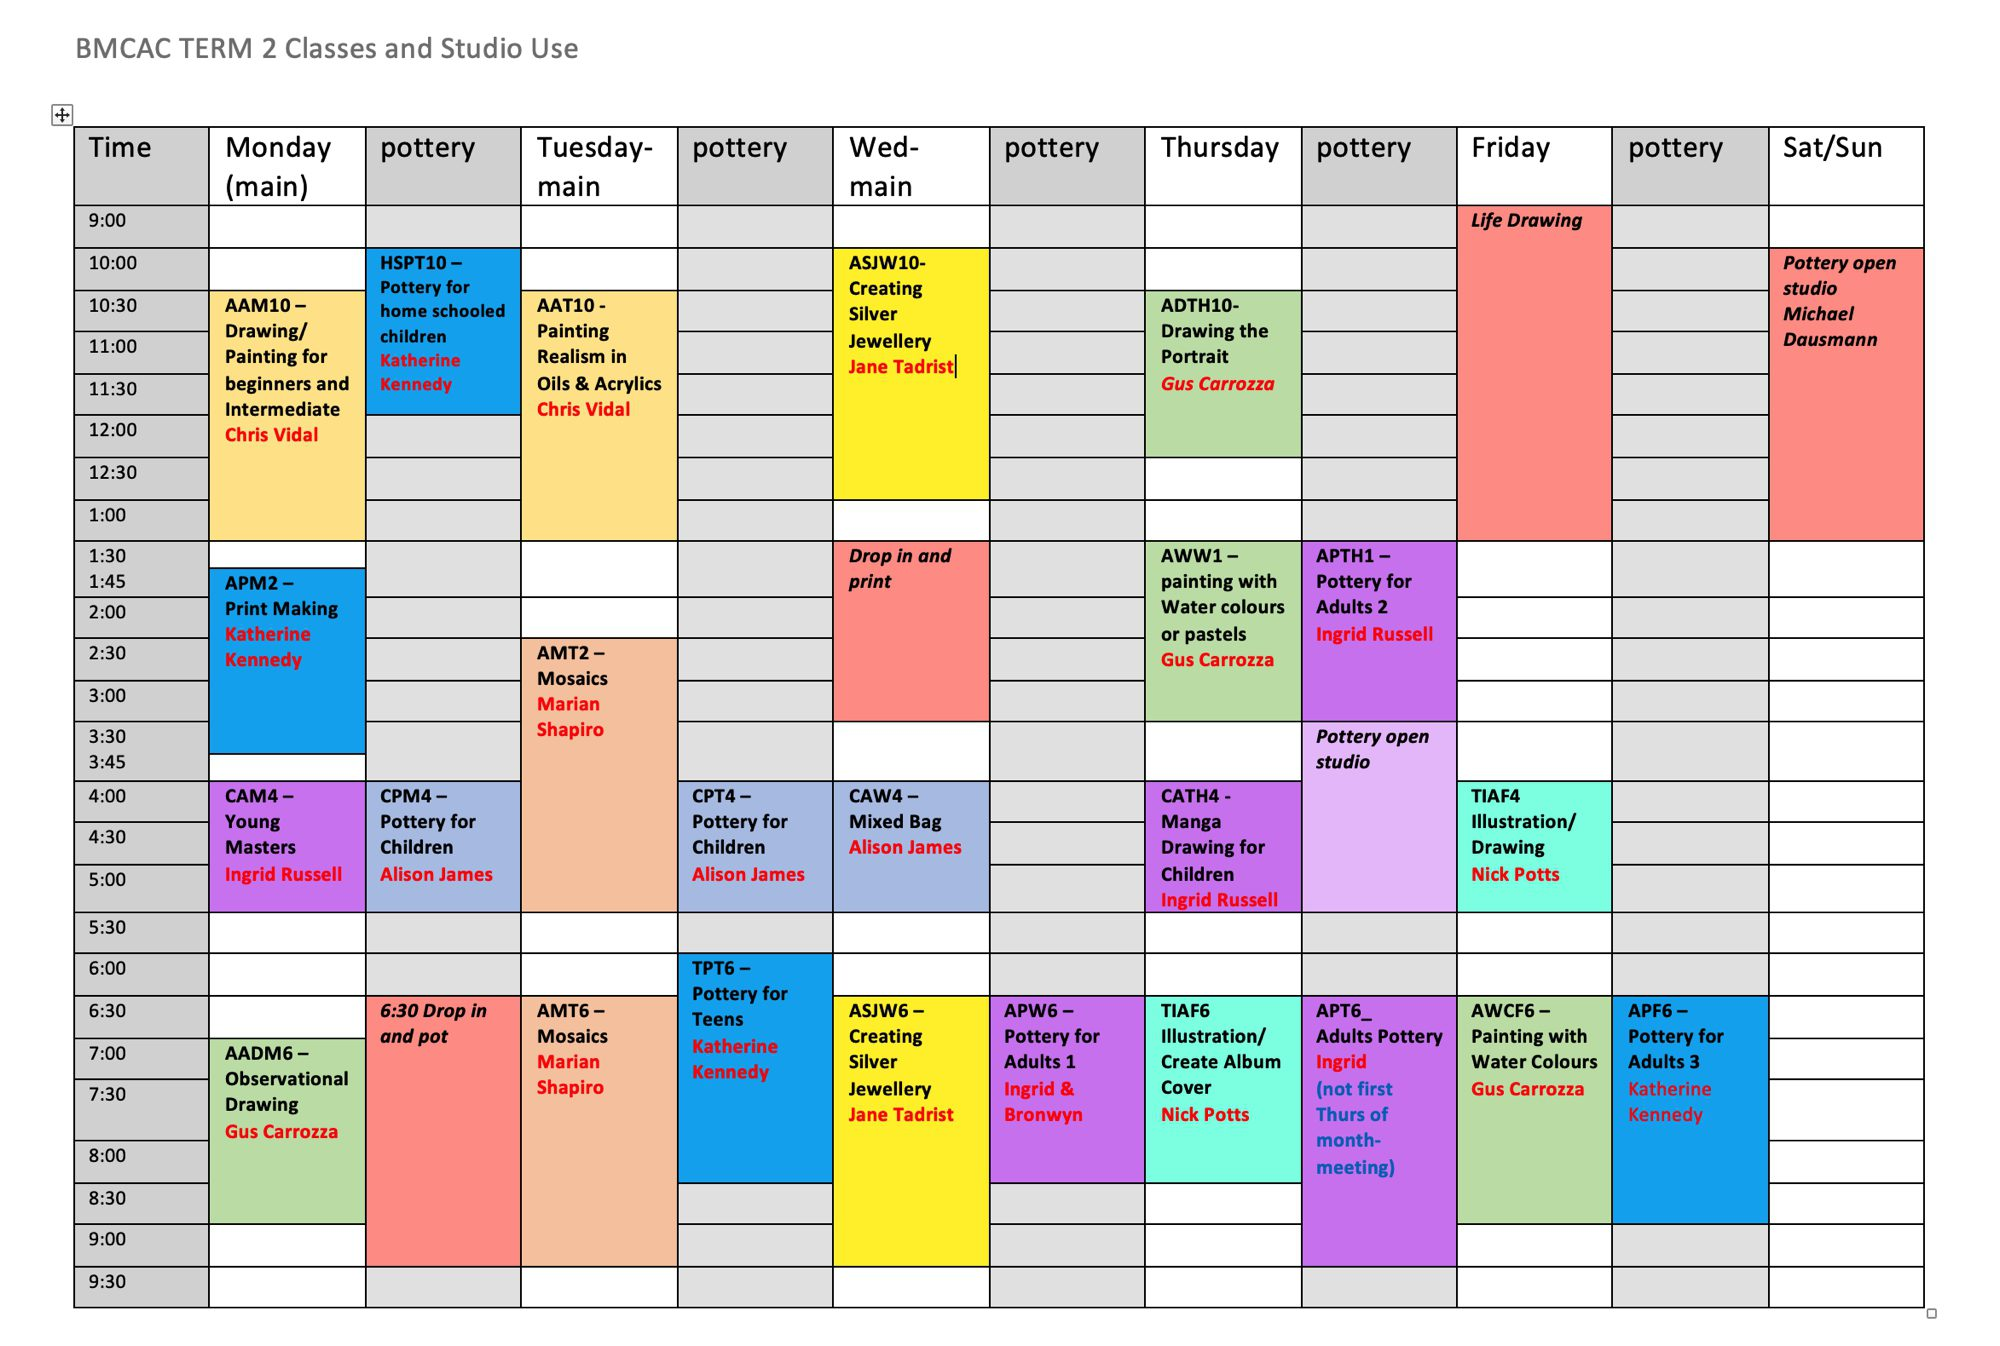 Term 2 classes and studio use